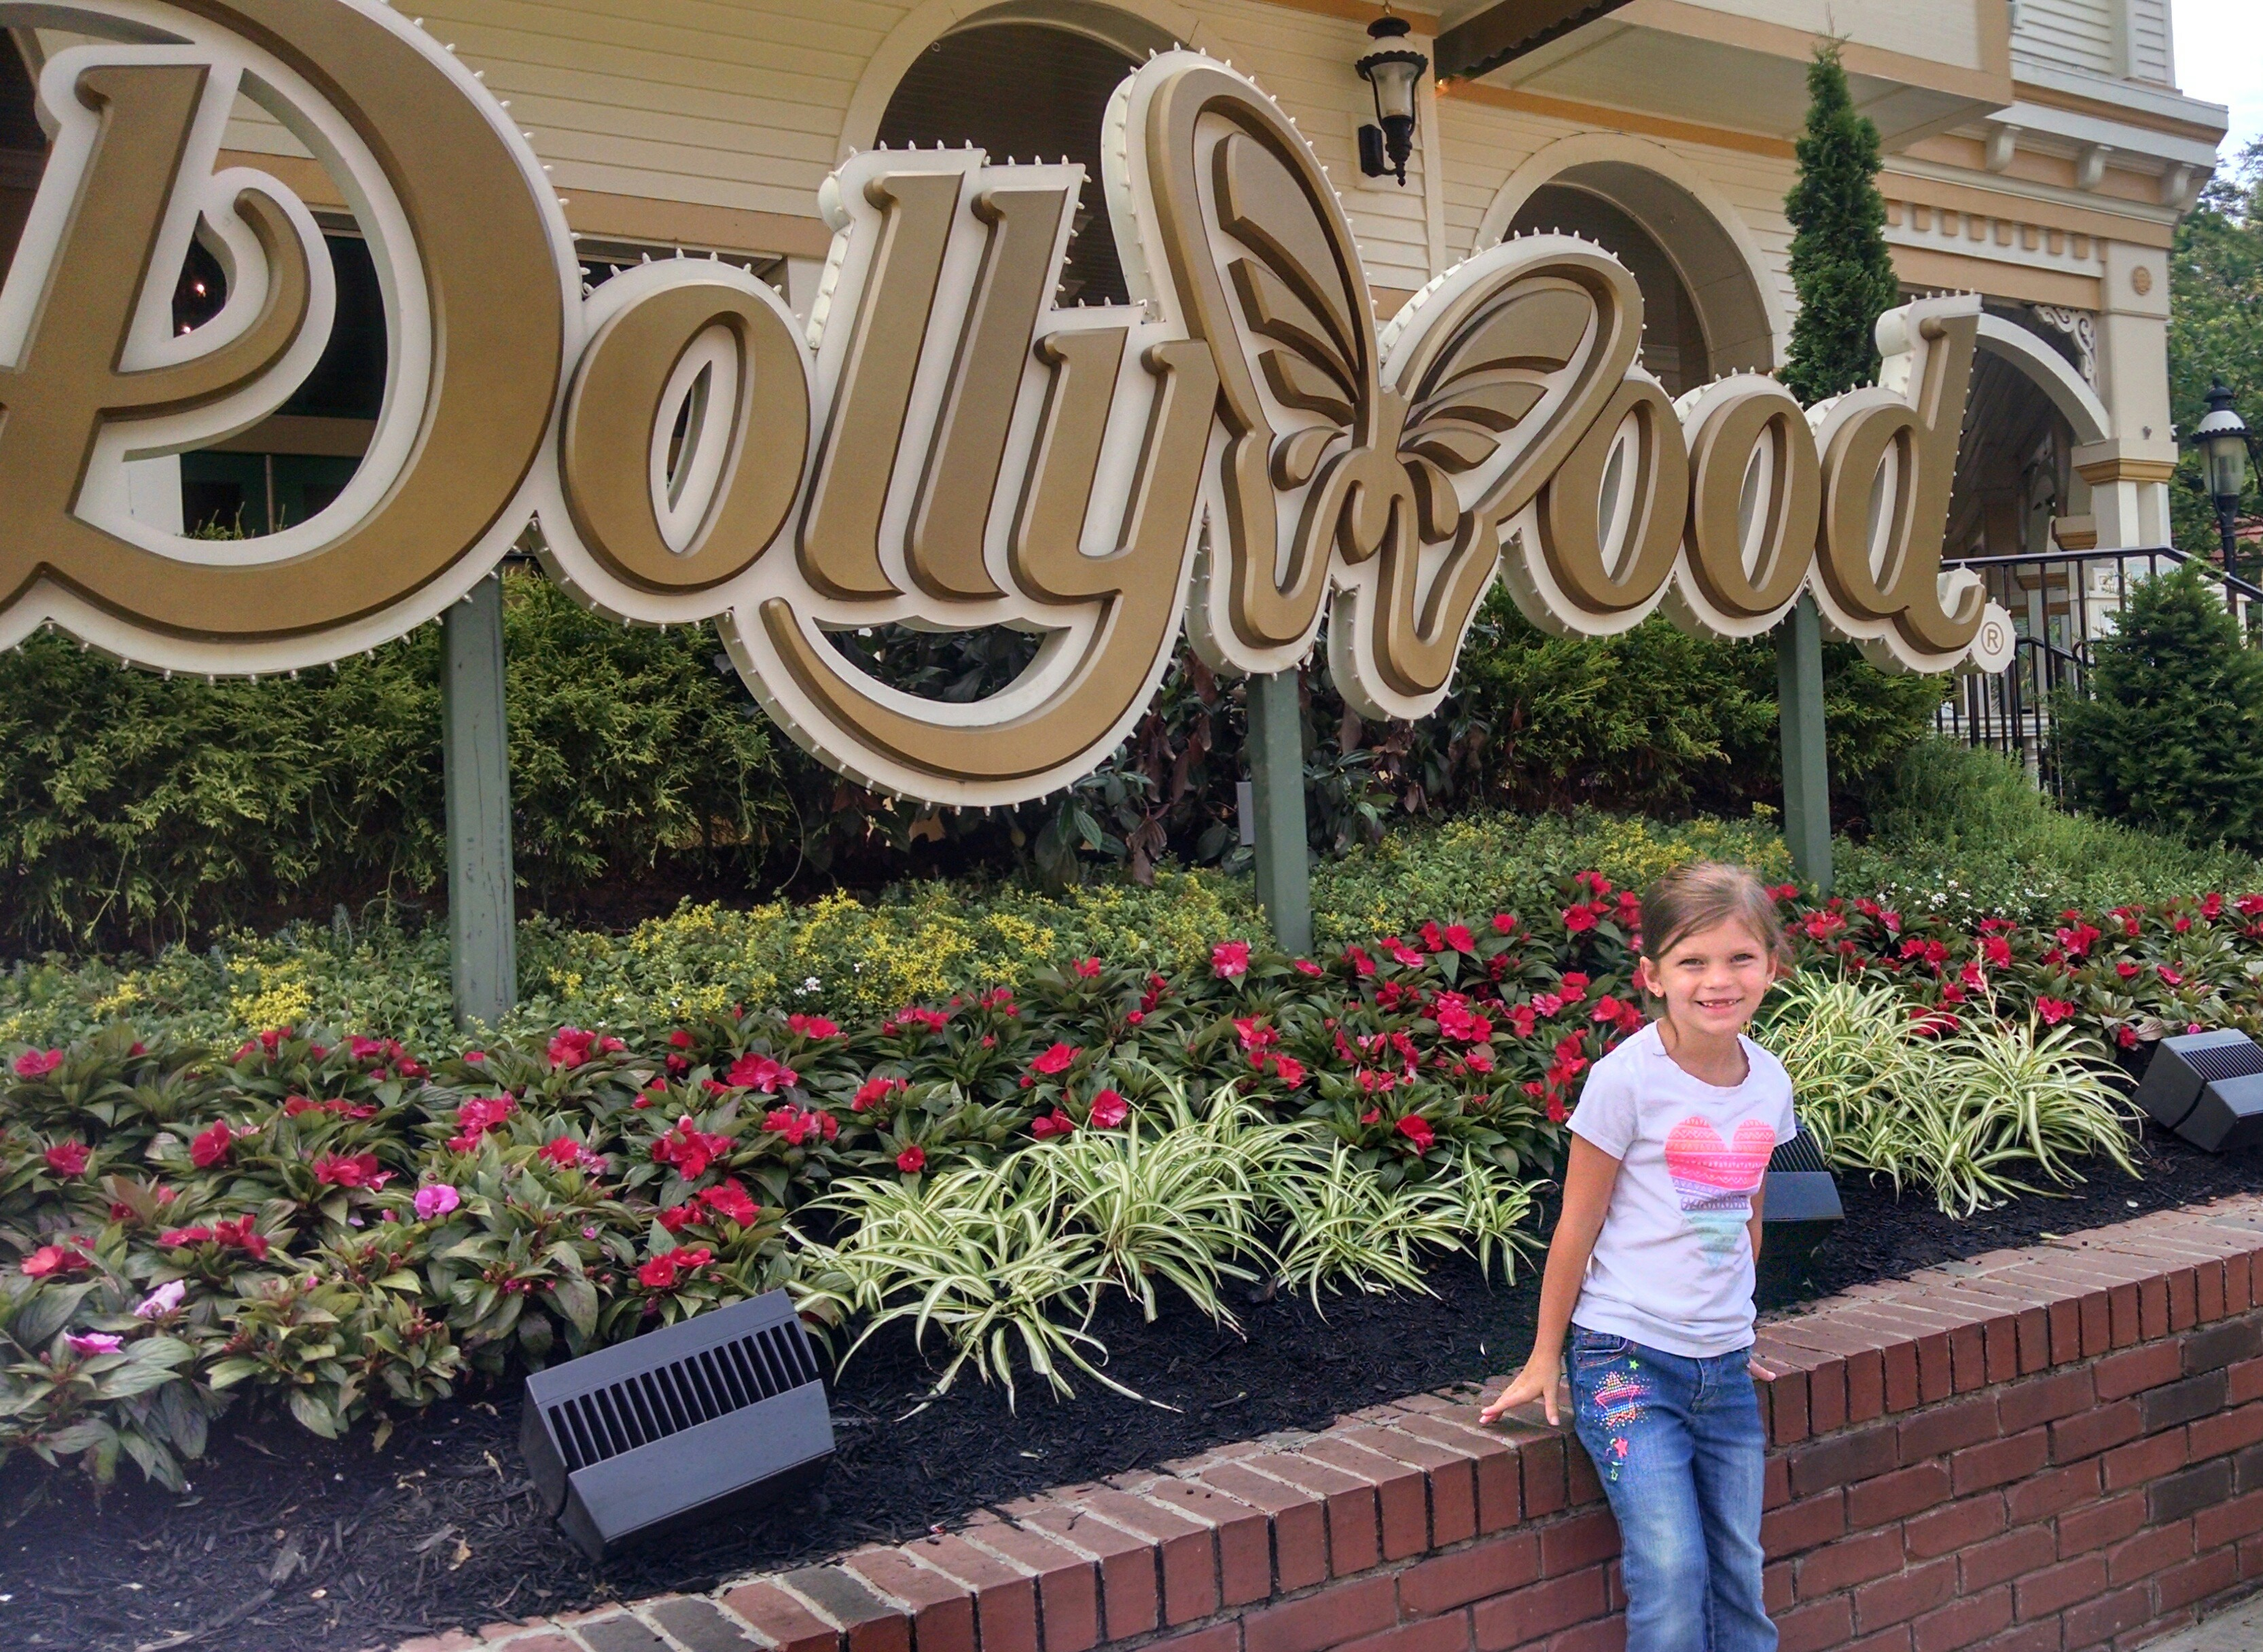 Dollywood Tickets - Pigeon Forge, TN | Dollywood Theme Park